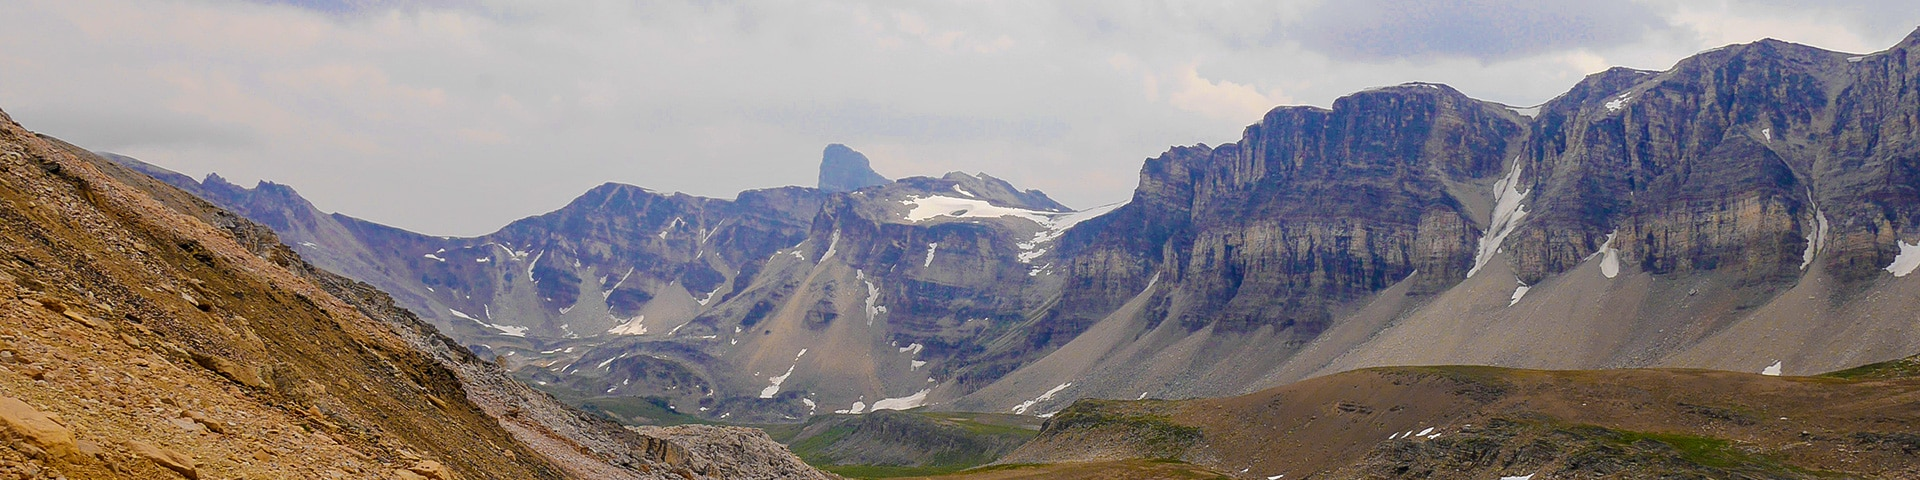 Panorama of the North Molar Pass hike along Icefields Parkway, the Canadian Rockies